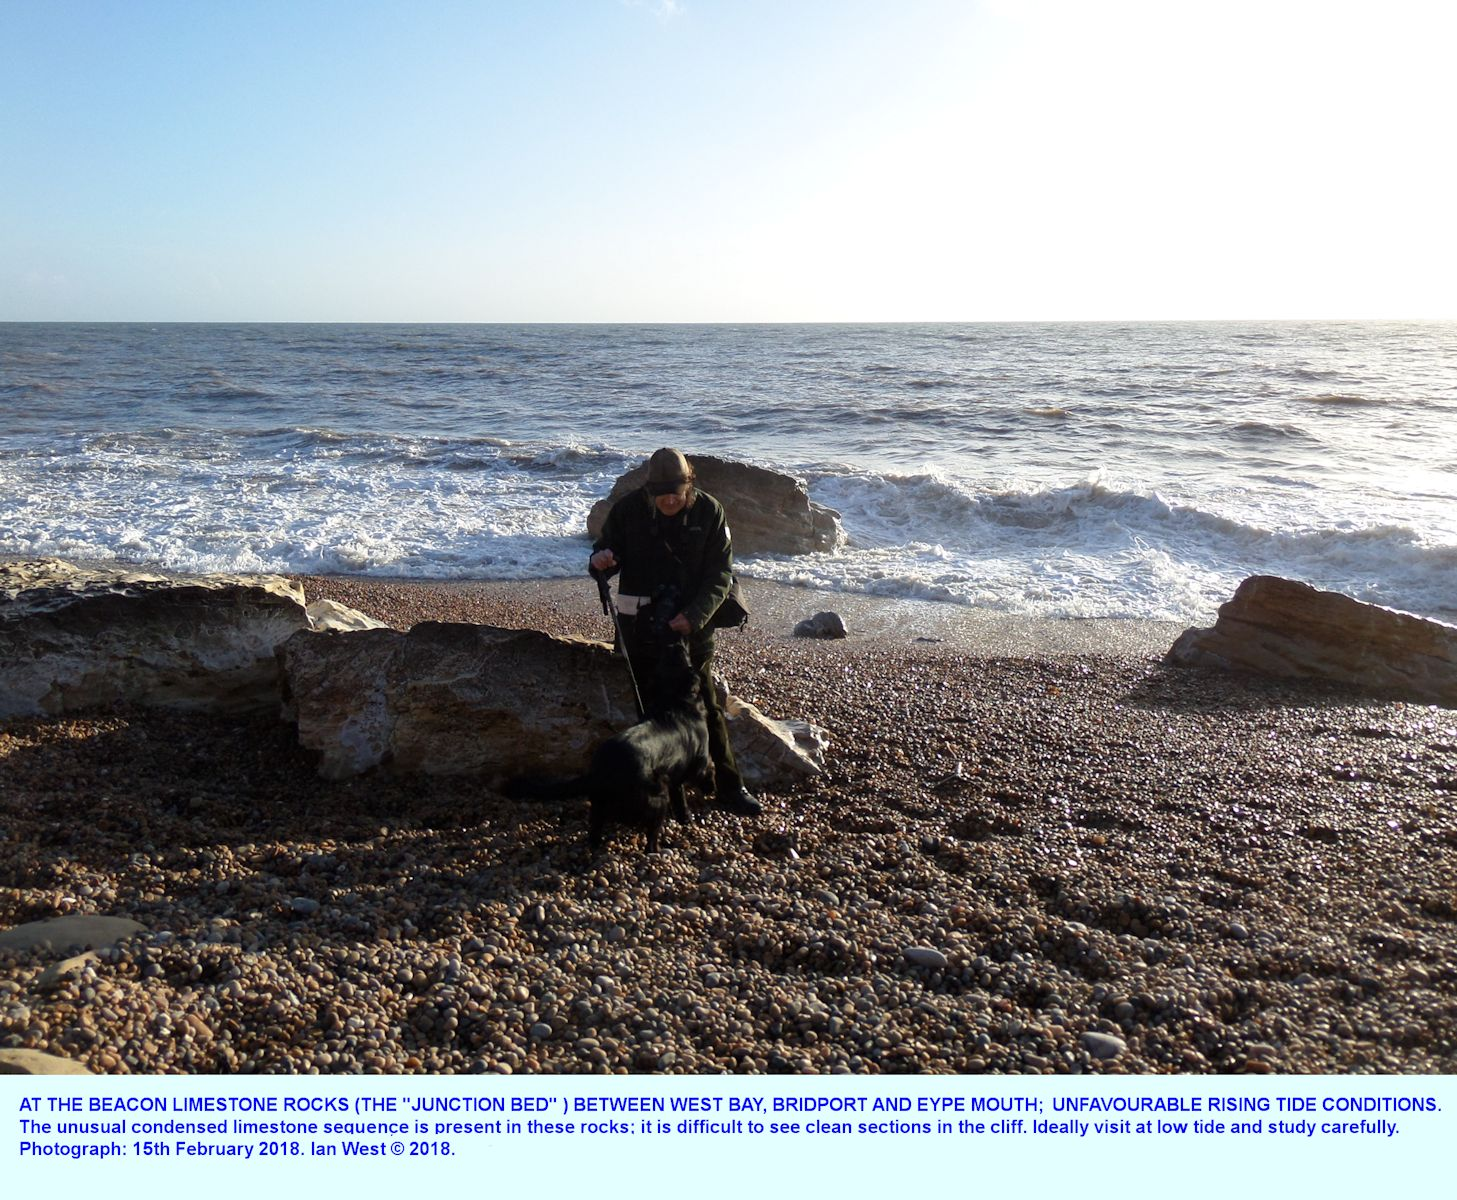 Fallen blocks of Toarcian, Upper Lias, Beacon Limestone or Junction Bed, partly in the sea, with a rising tide, location near Eype Mouth, west of Bridport, Dorset, February 2018, with Ian West